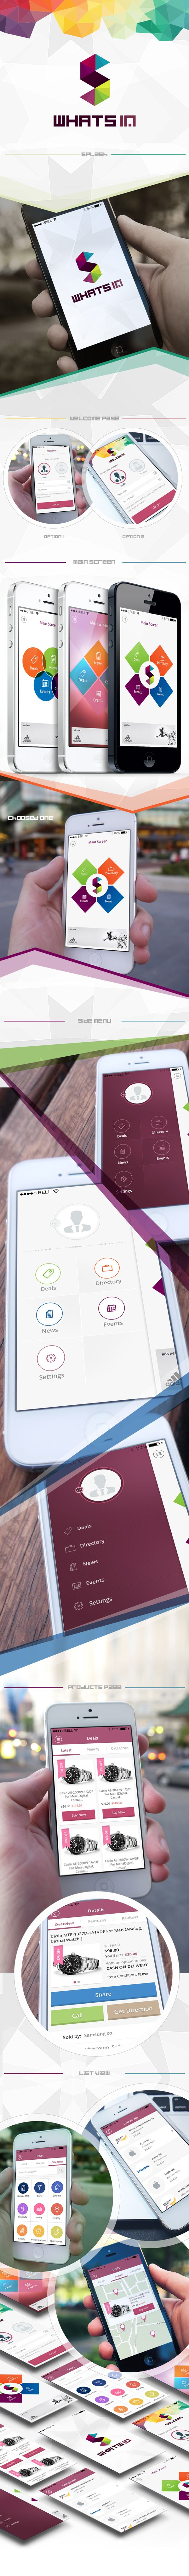 whats in mobile app by Mohammed Agwa, via Behance